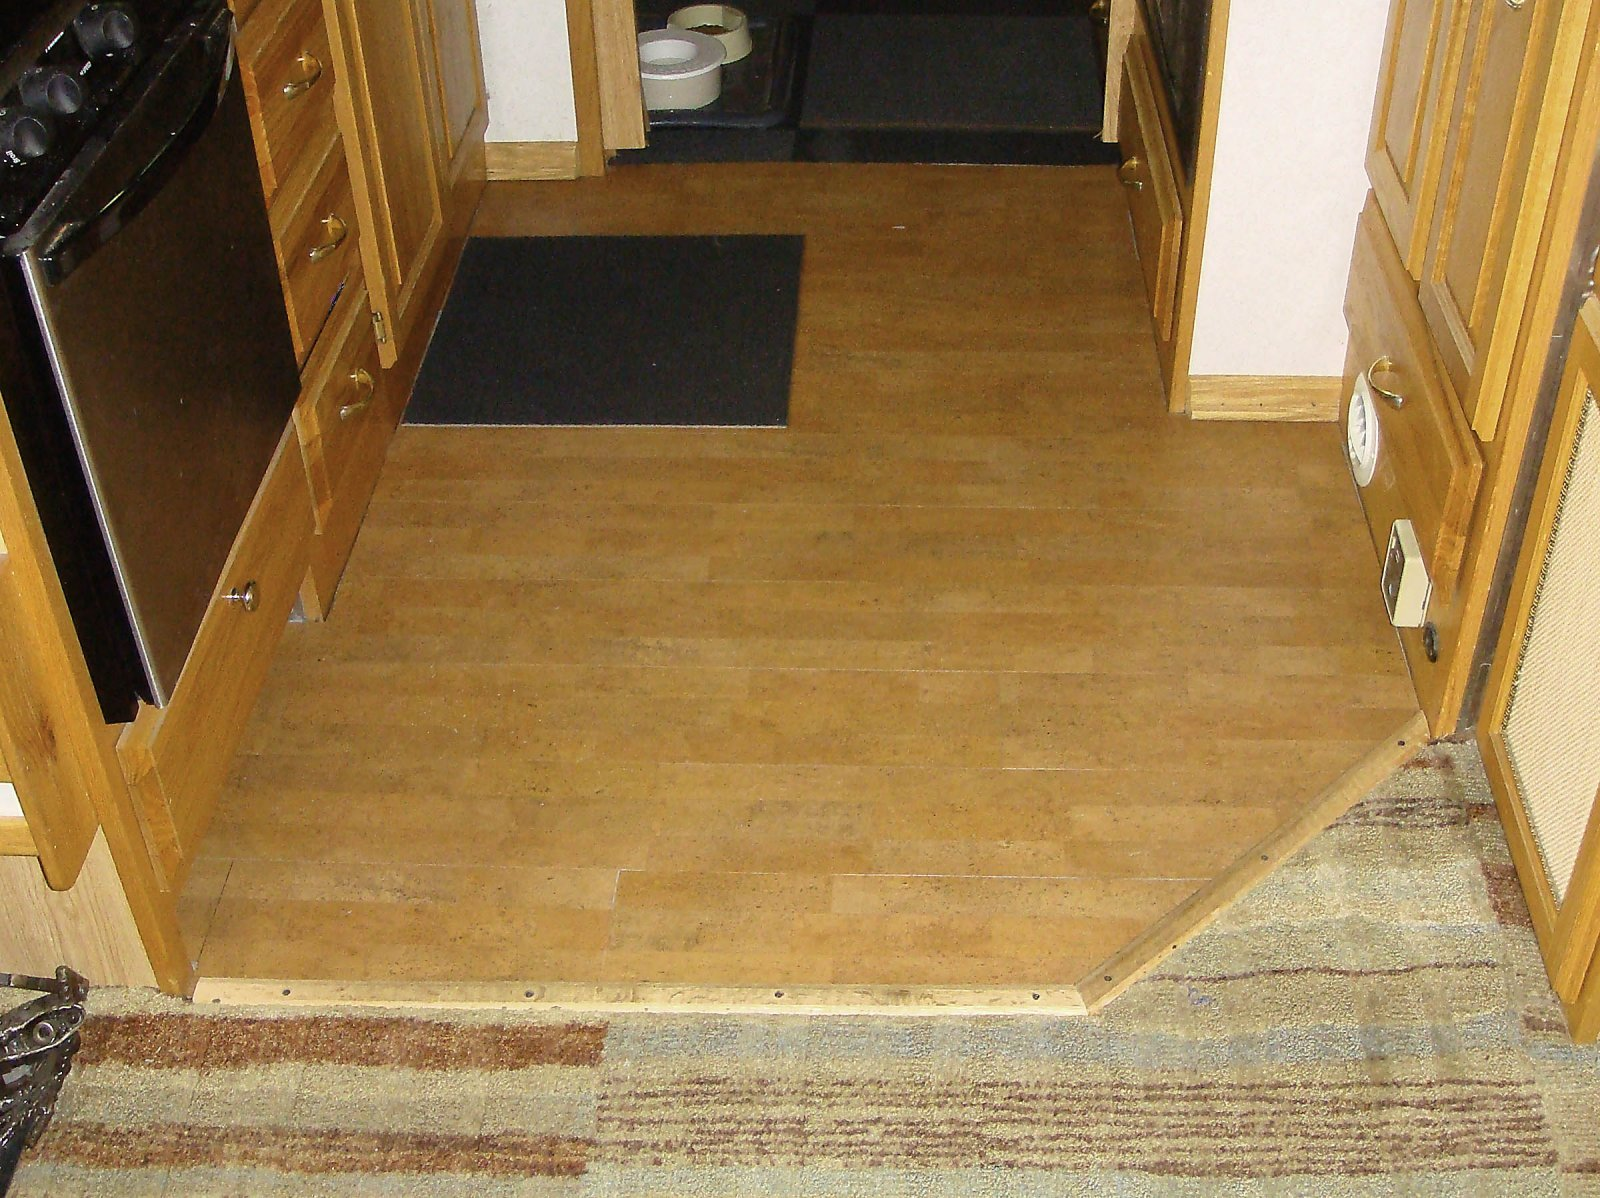 Click image for larger version  Name:NewFloor.jpg Views:92 Size:393.3 KB ID:140875